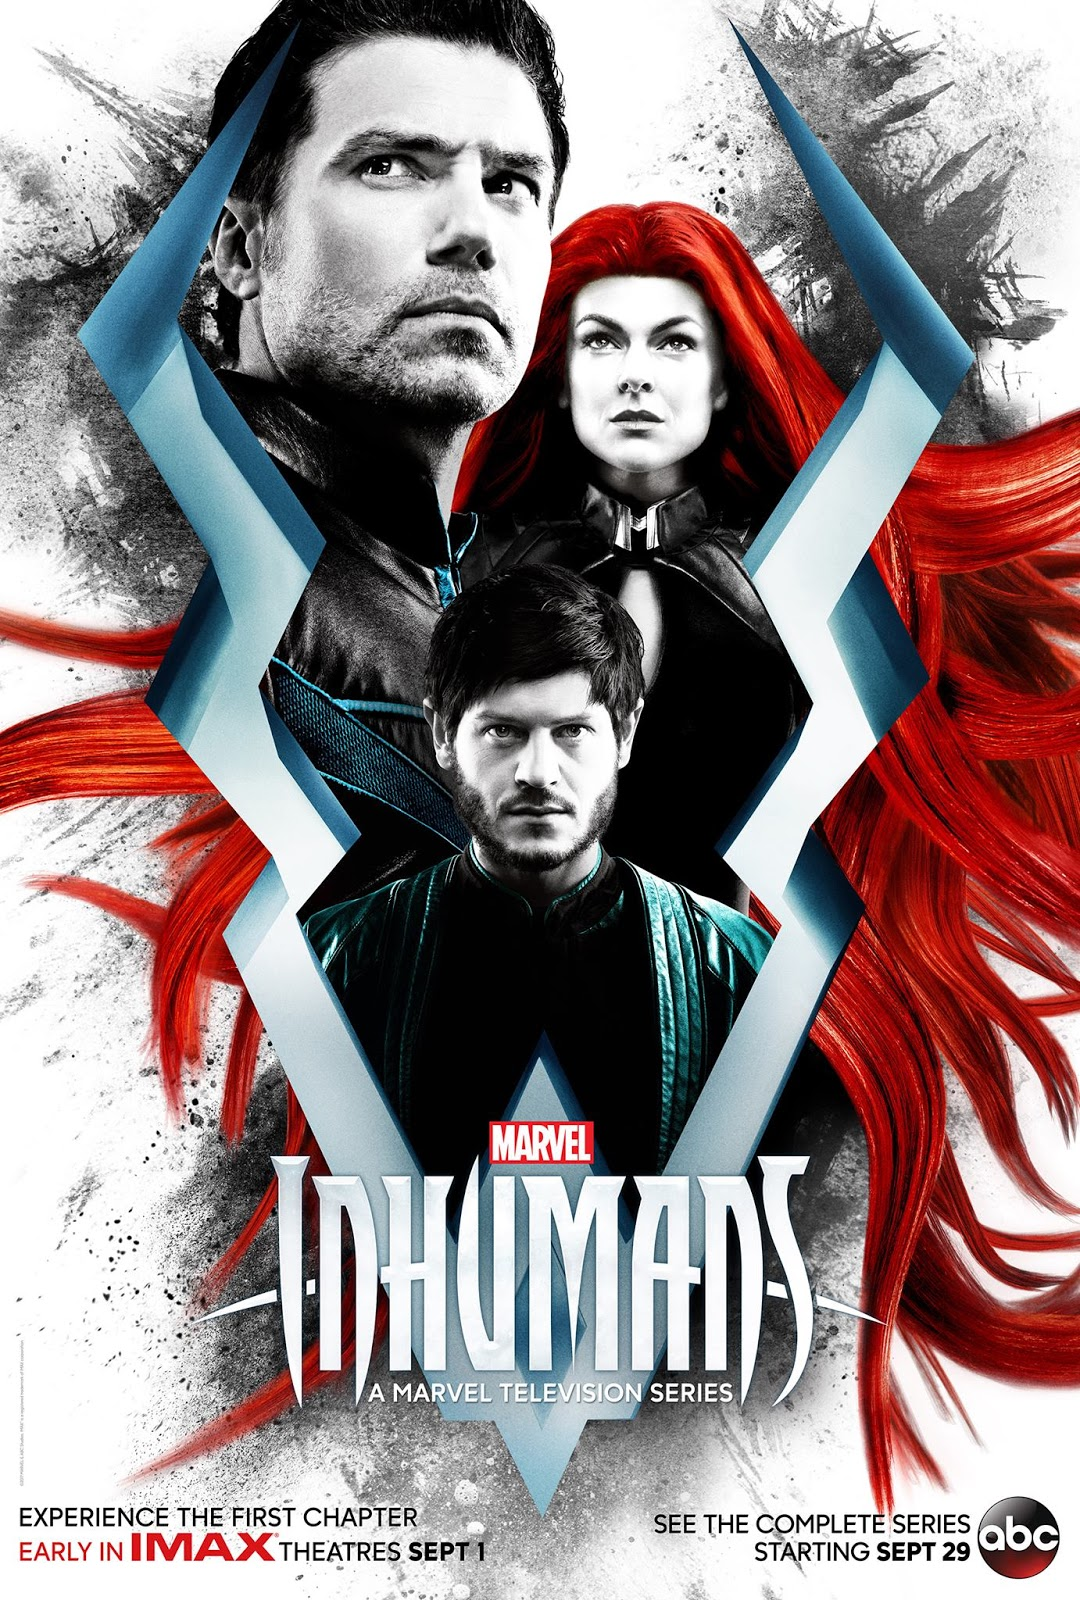 Marvel ABC Inhumans poster